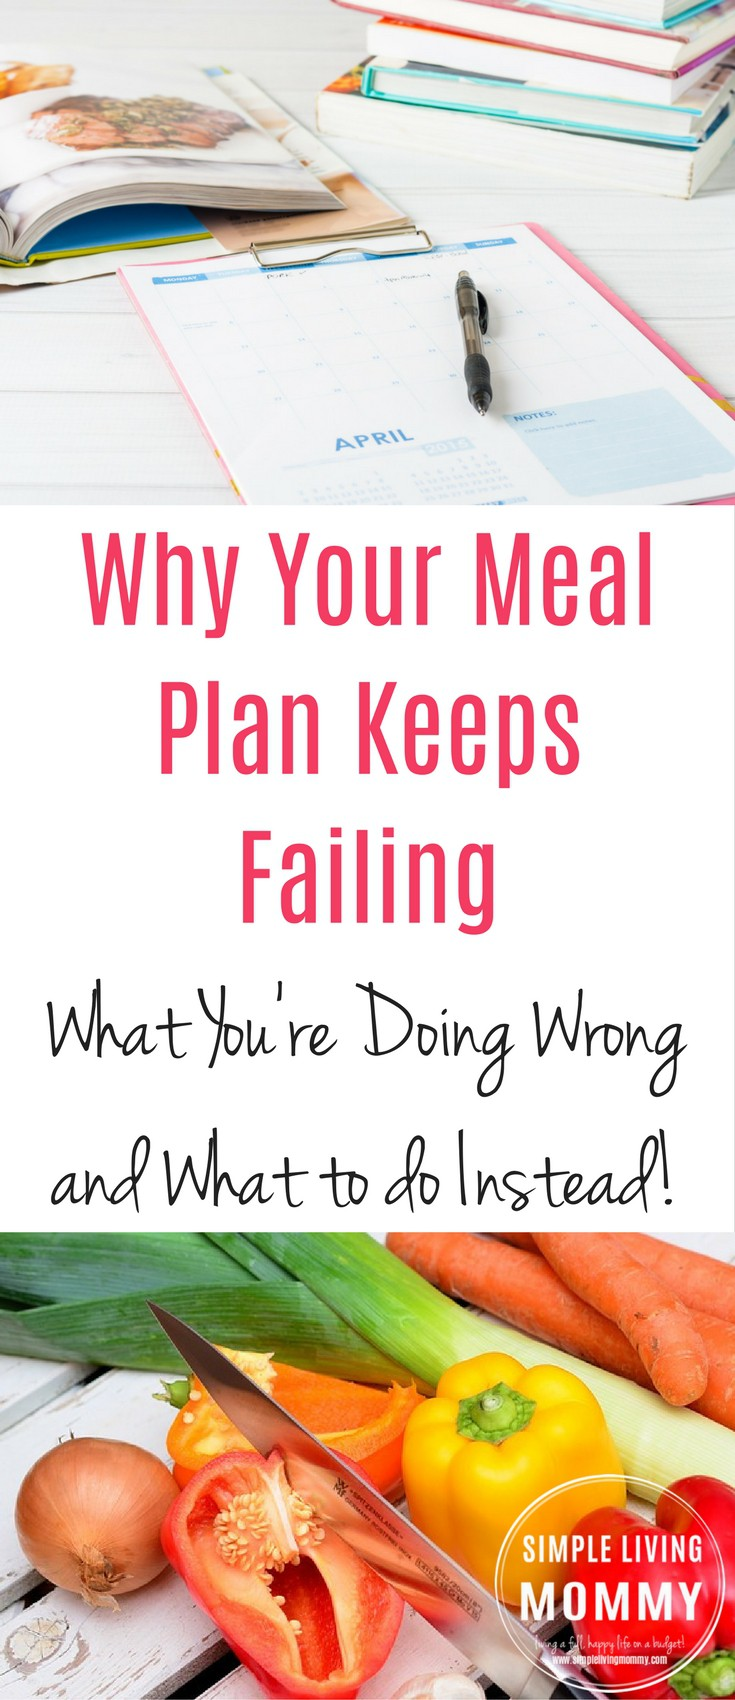 Need to meal plan on a budget but your meal plan keeps failing?  This free meal planning advice will teach you how to make a family meal plan you can actually stick to.  These tips are exactly what I needed!